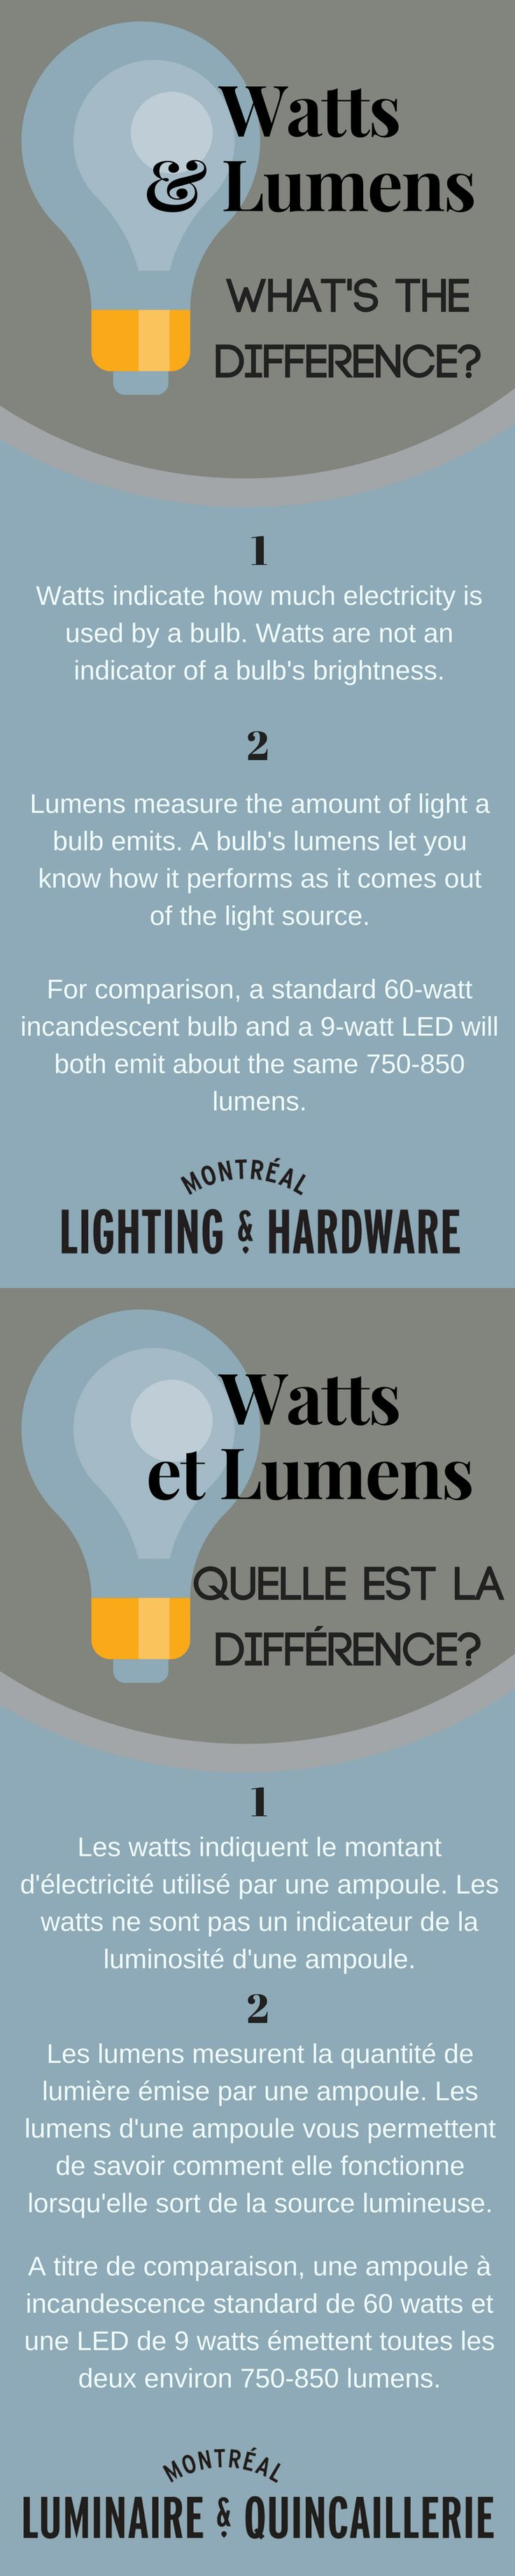 Quick tips: watts vs. lumens - what's the difference? | Petits astuces, watts vs lumens - quelle est la différence?